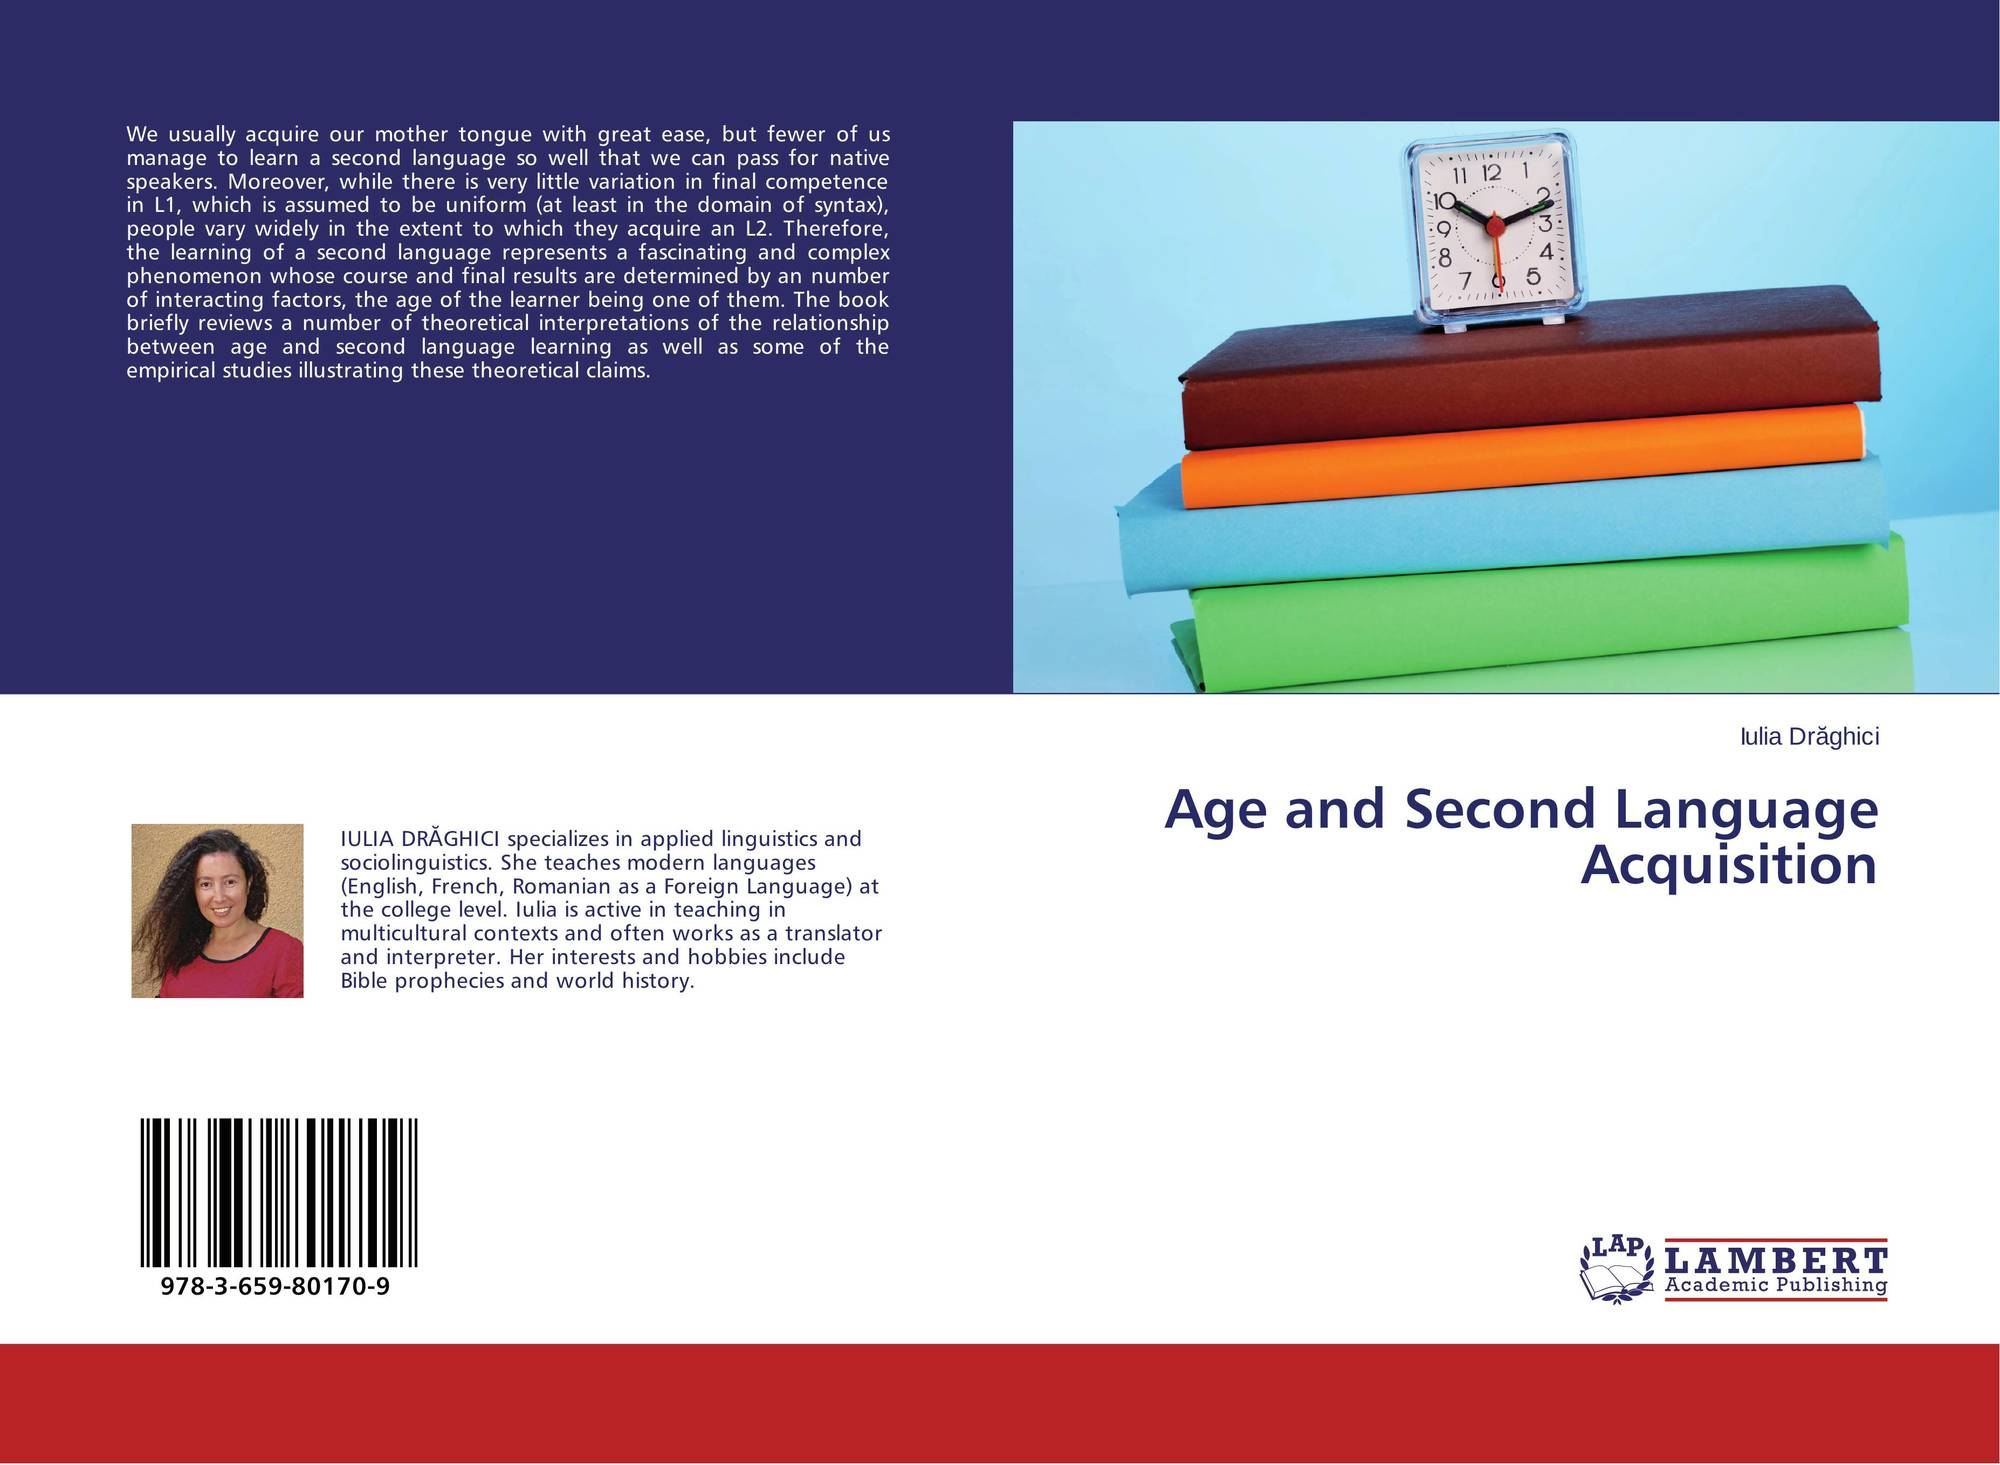 age and second language acquisition essay The learning process should begin at preschool age, when children are  the  crucial segment in second language acquisition is a second.